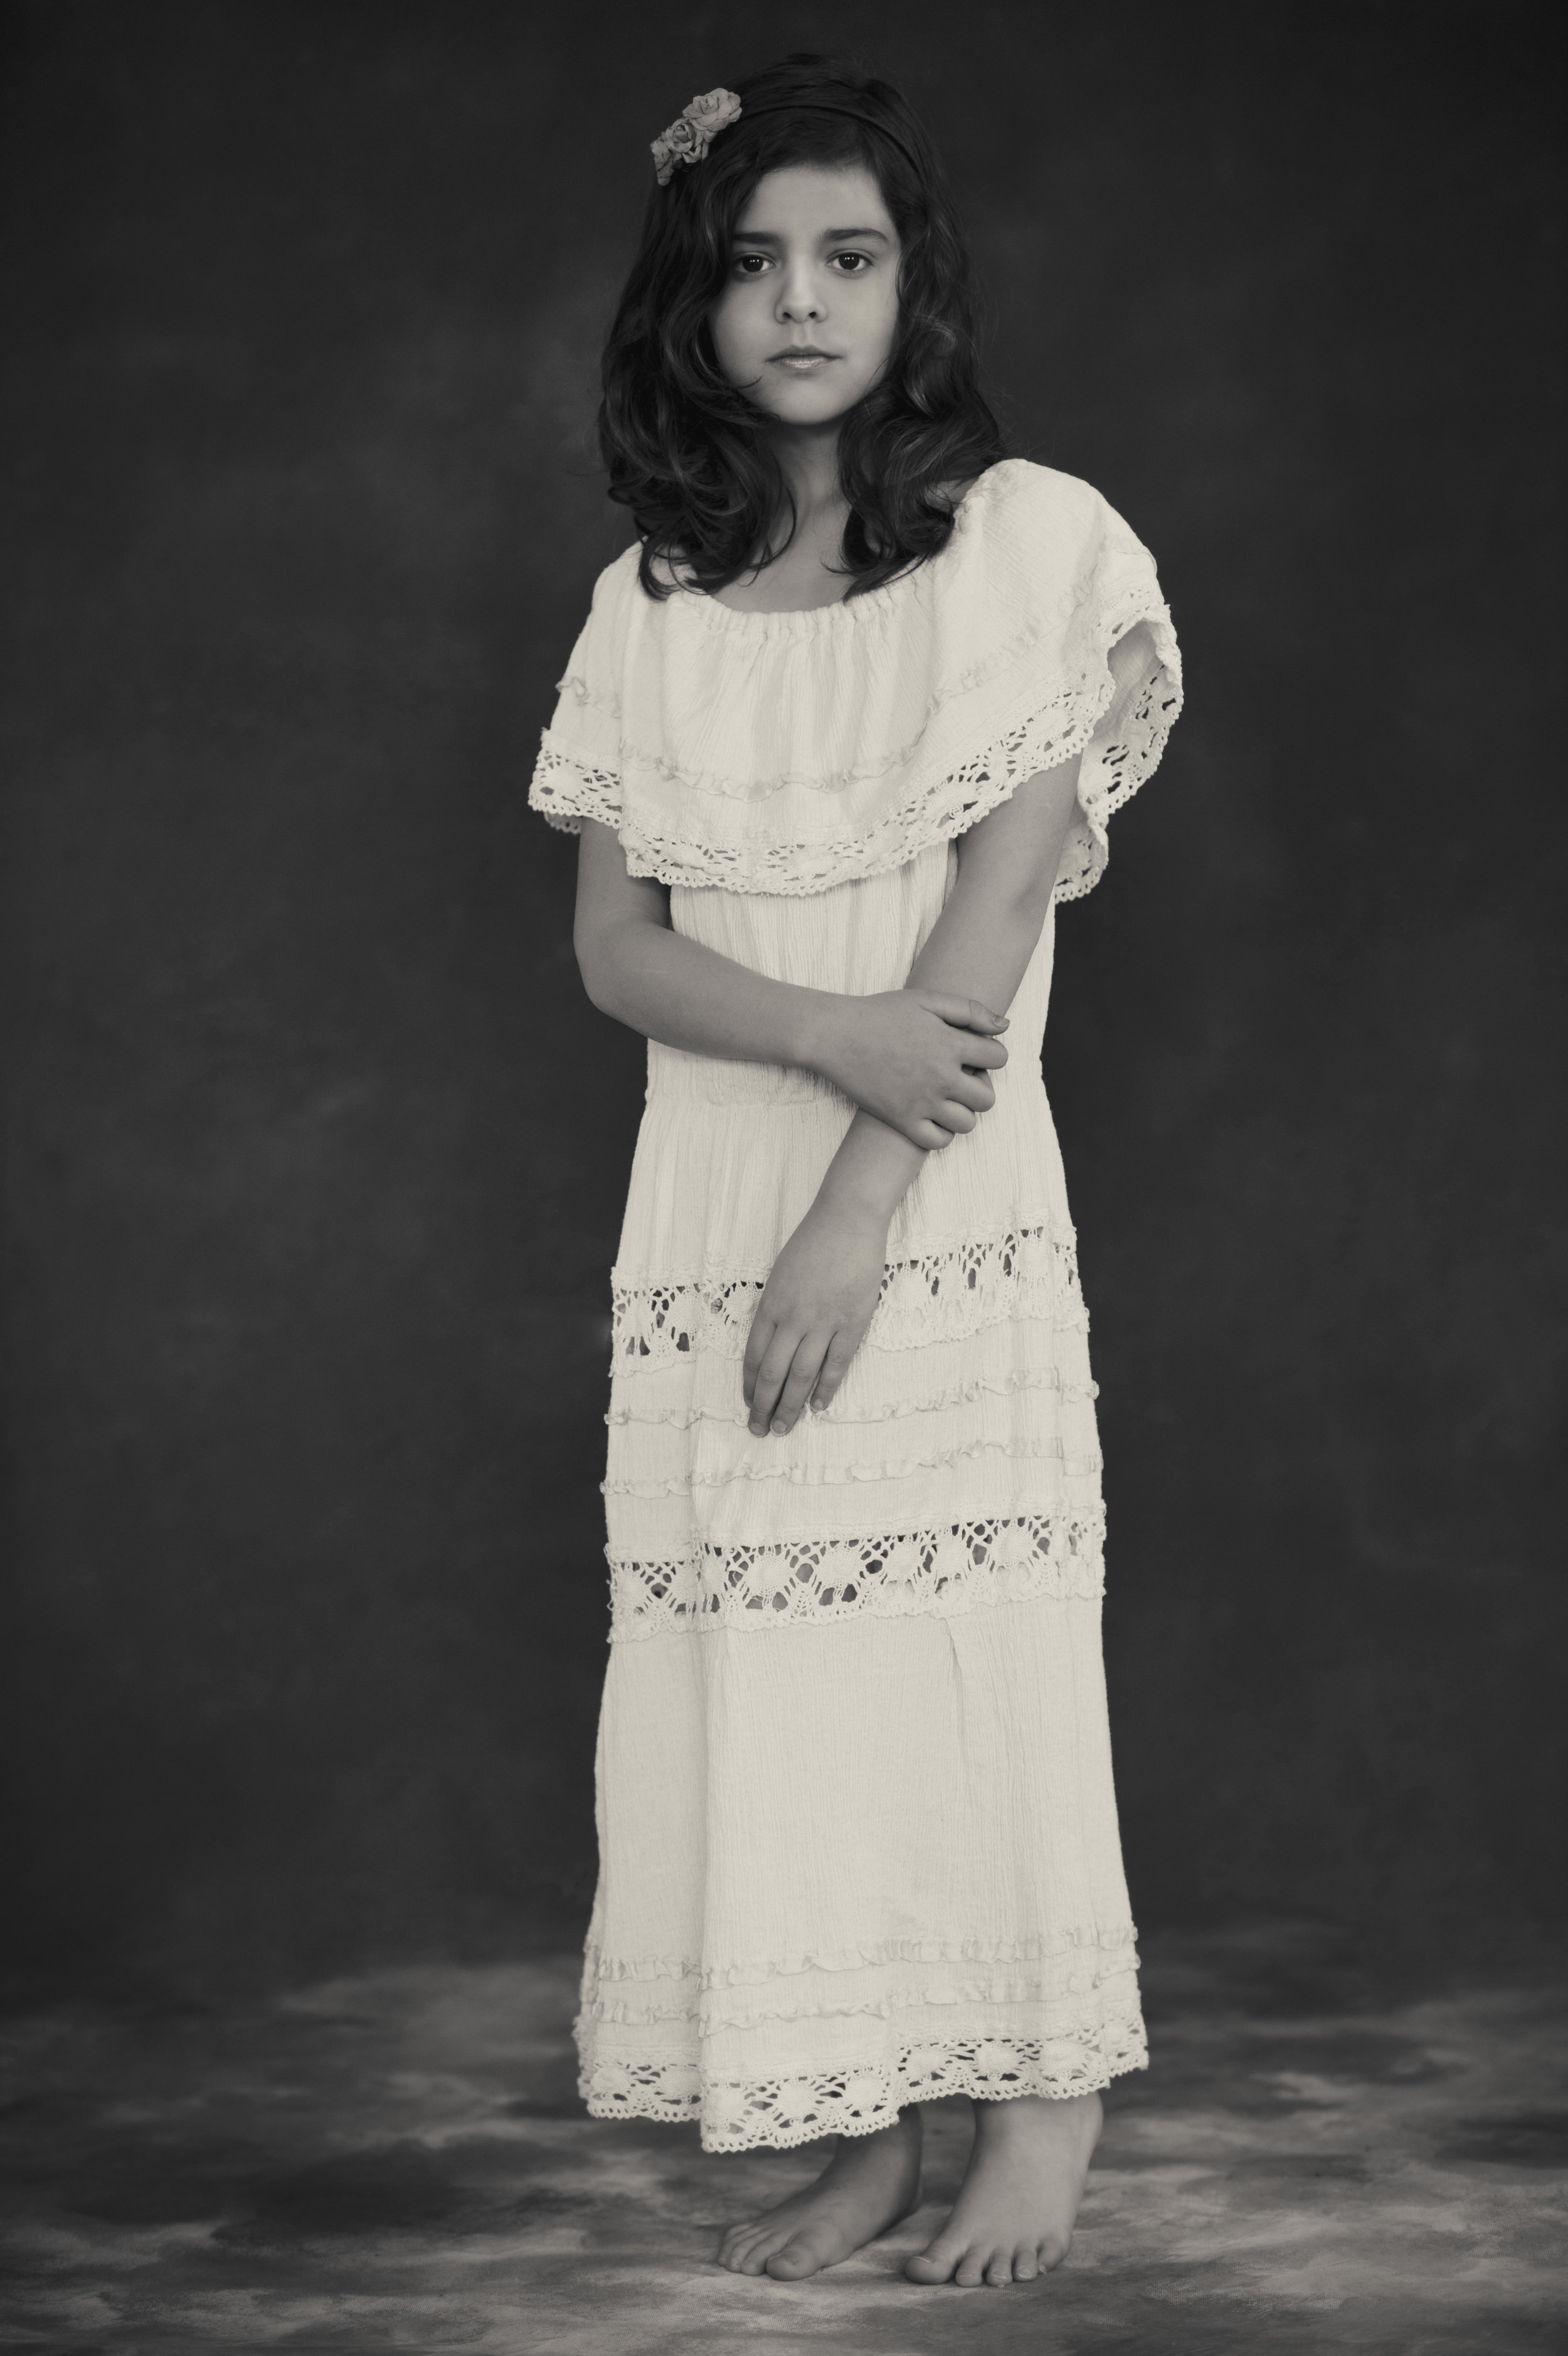 marta-hewson-young-girl-in-white-dress-with-flower-in-her-hair.jpg